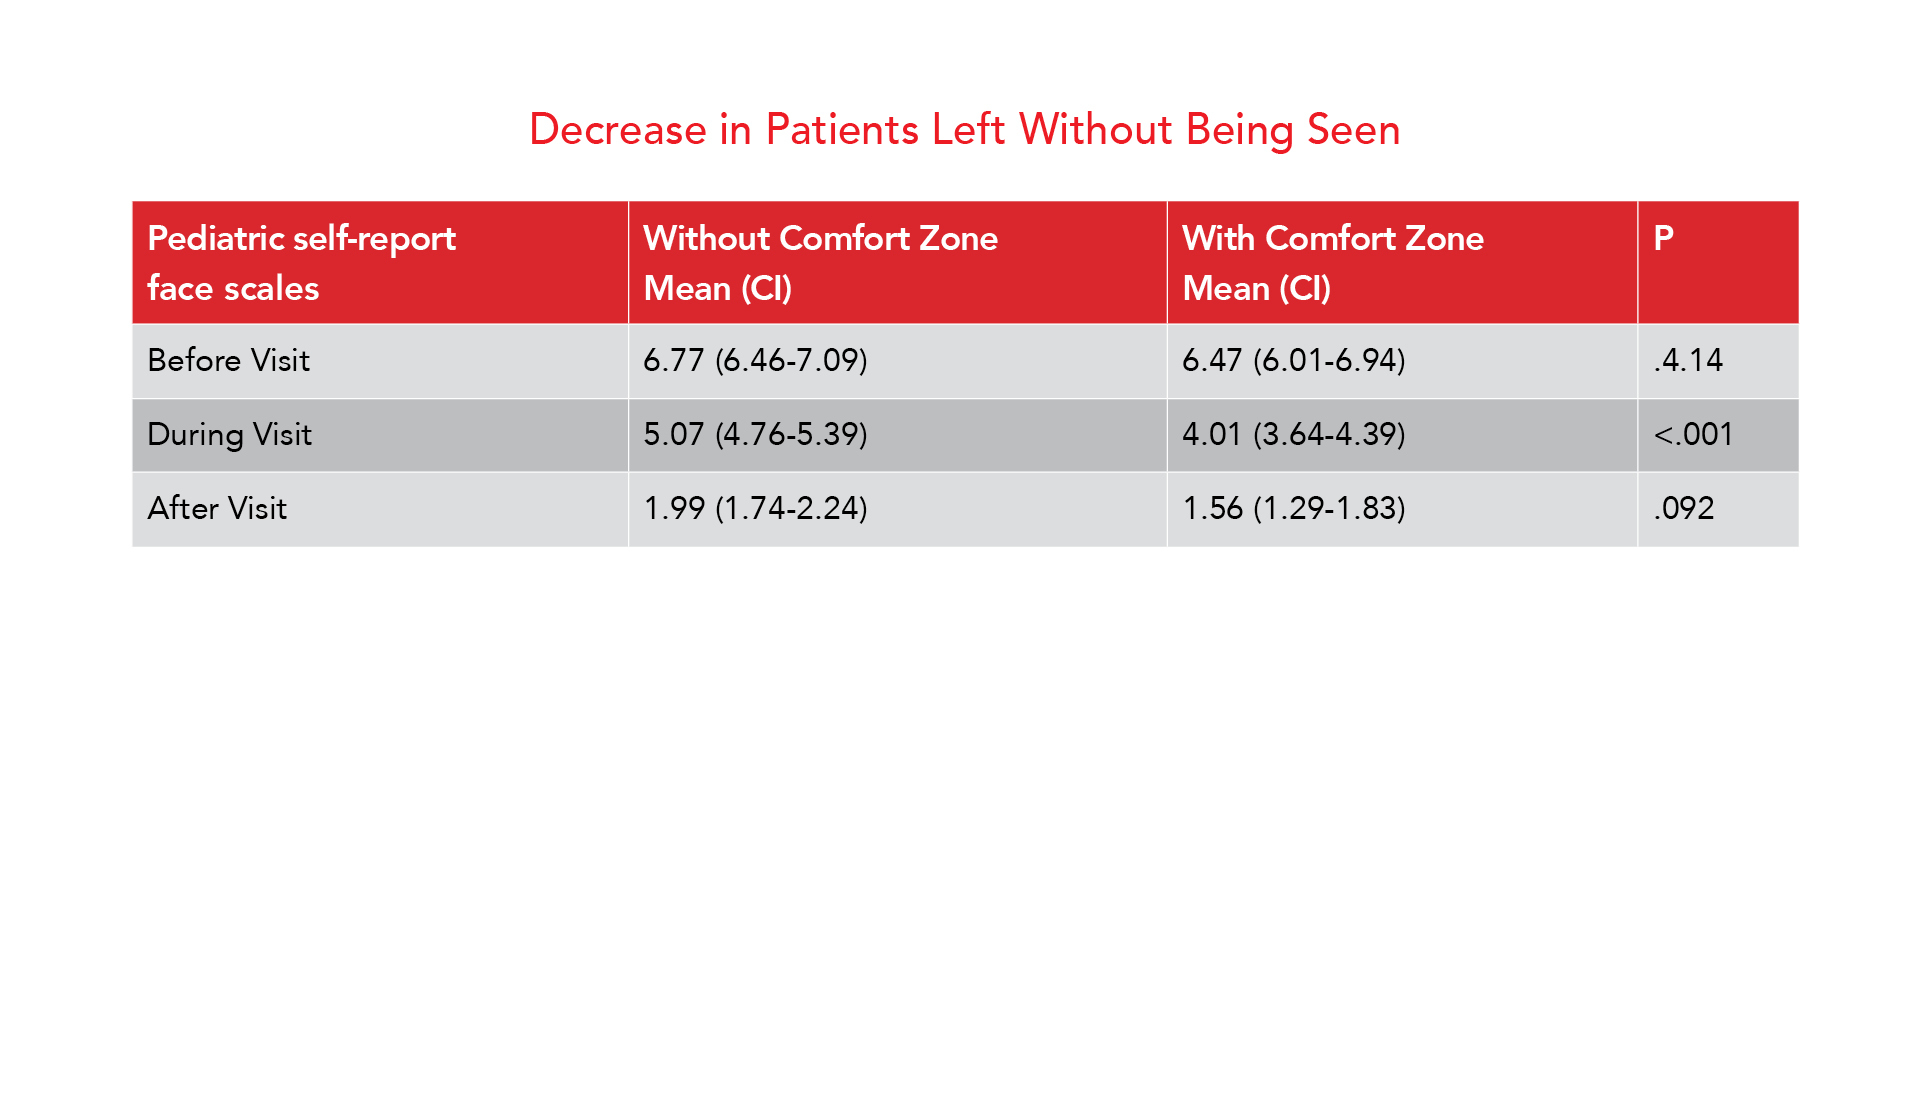 Decrease in Patients Left Without Being Seen